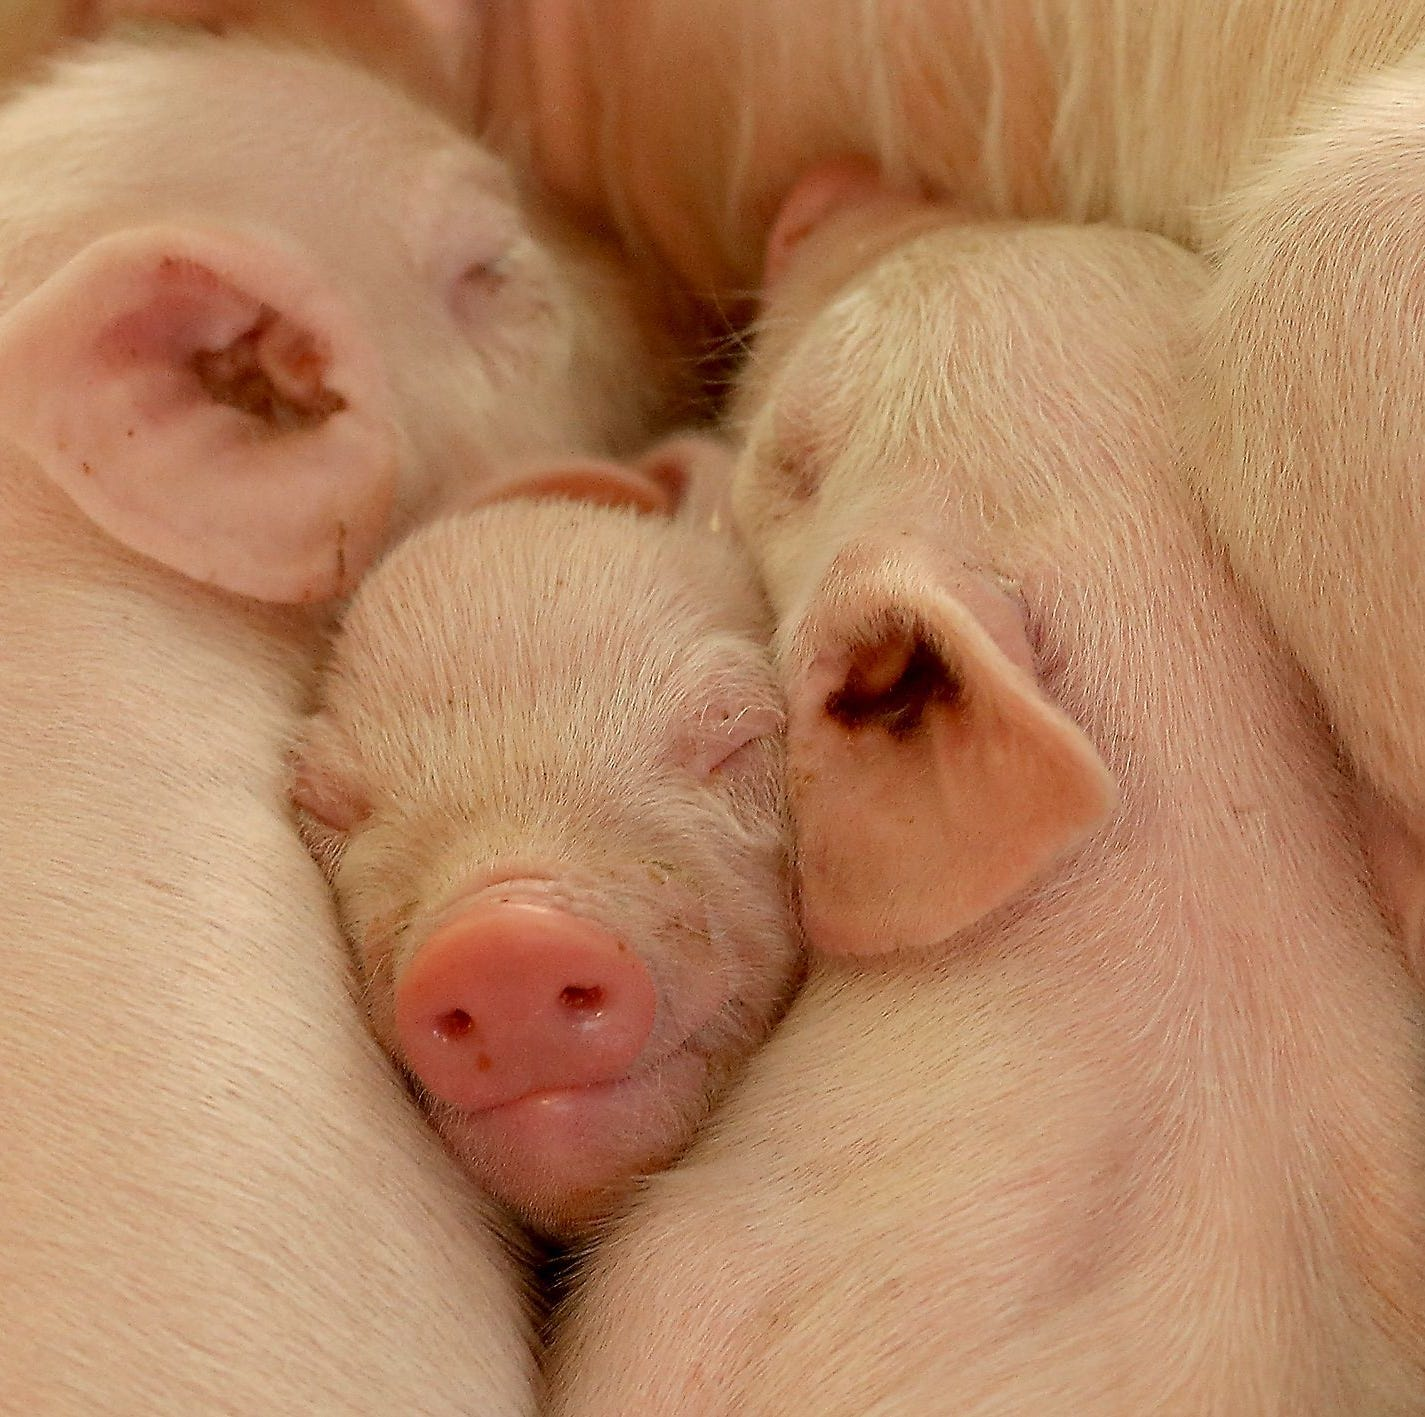 Officials seize 1M lbs. of pork amid virus concerns